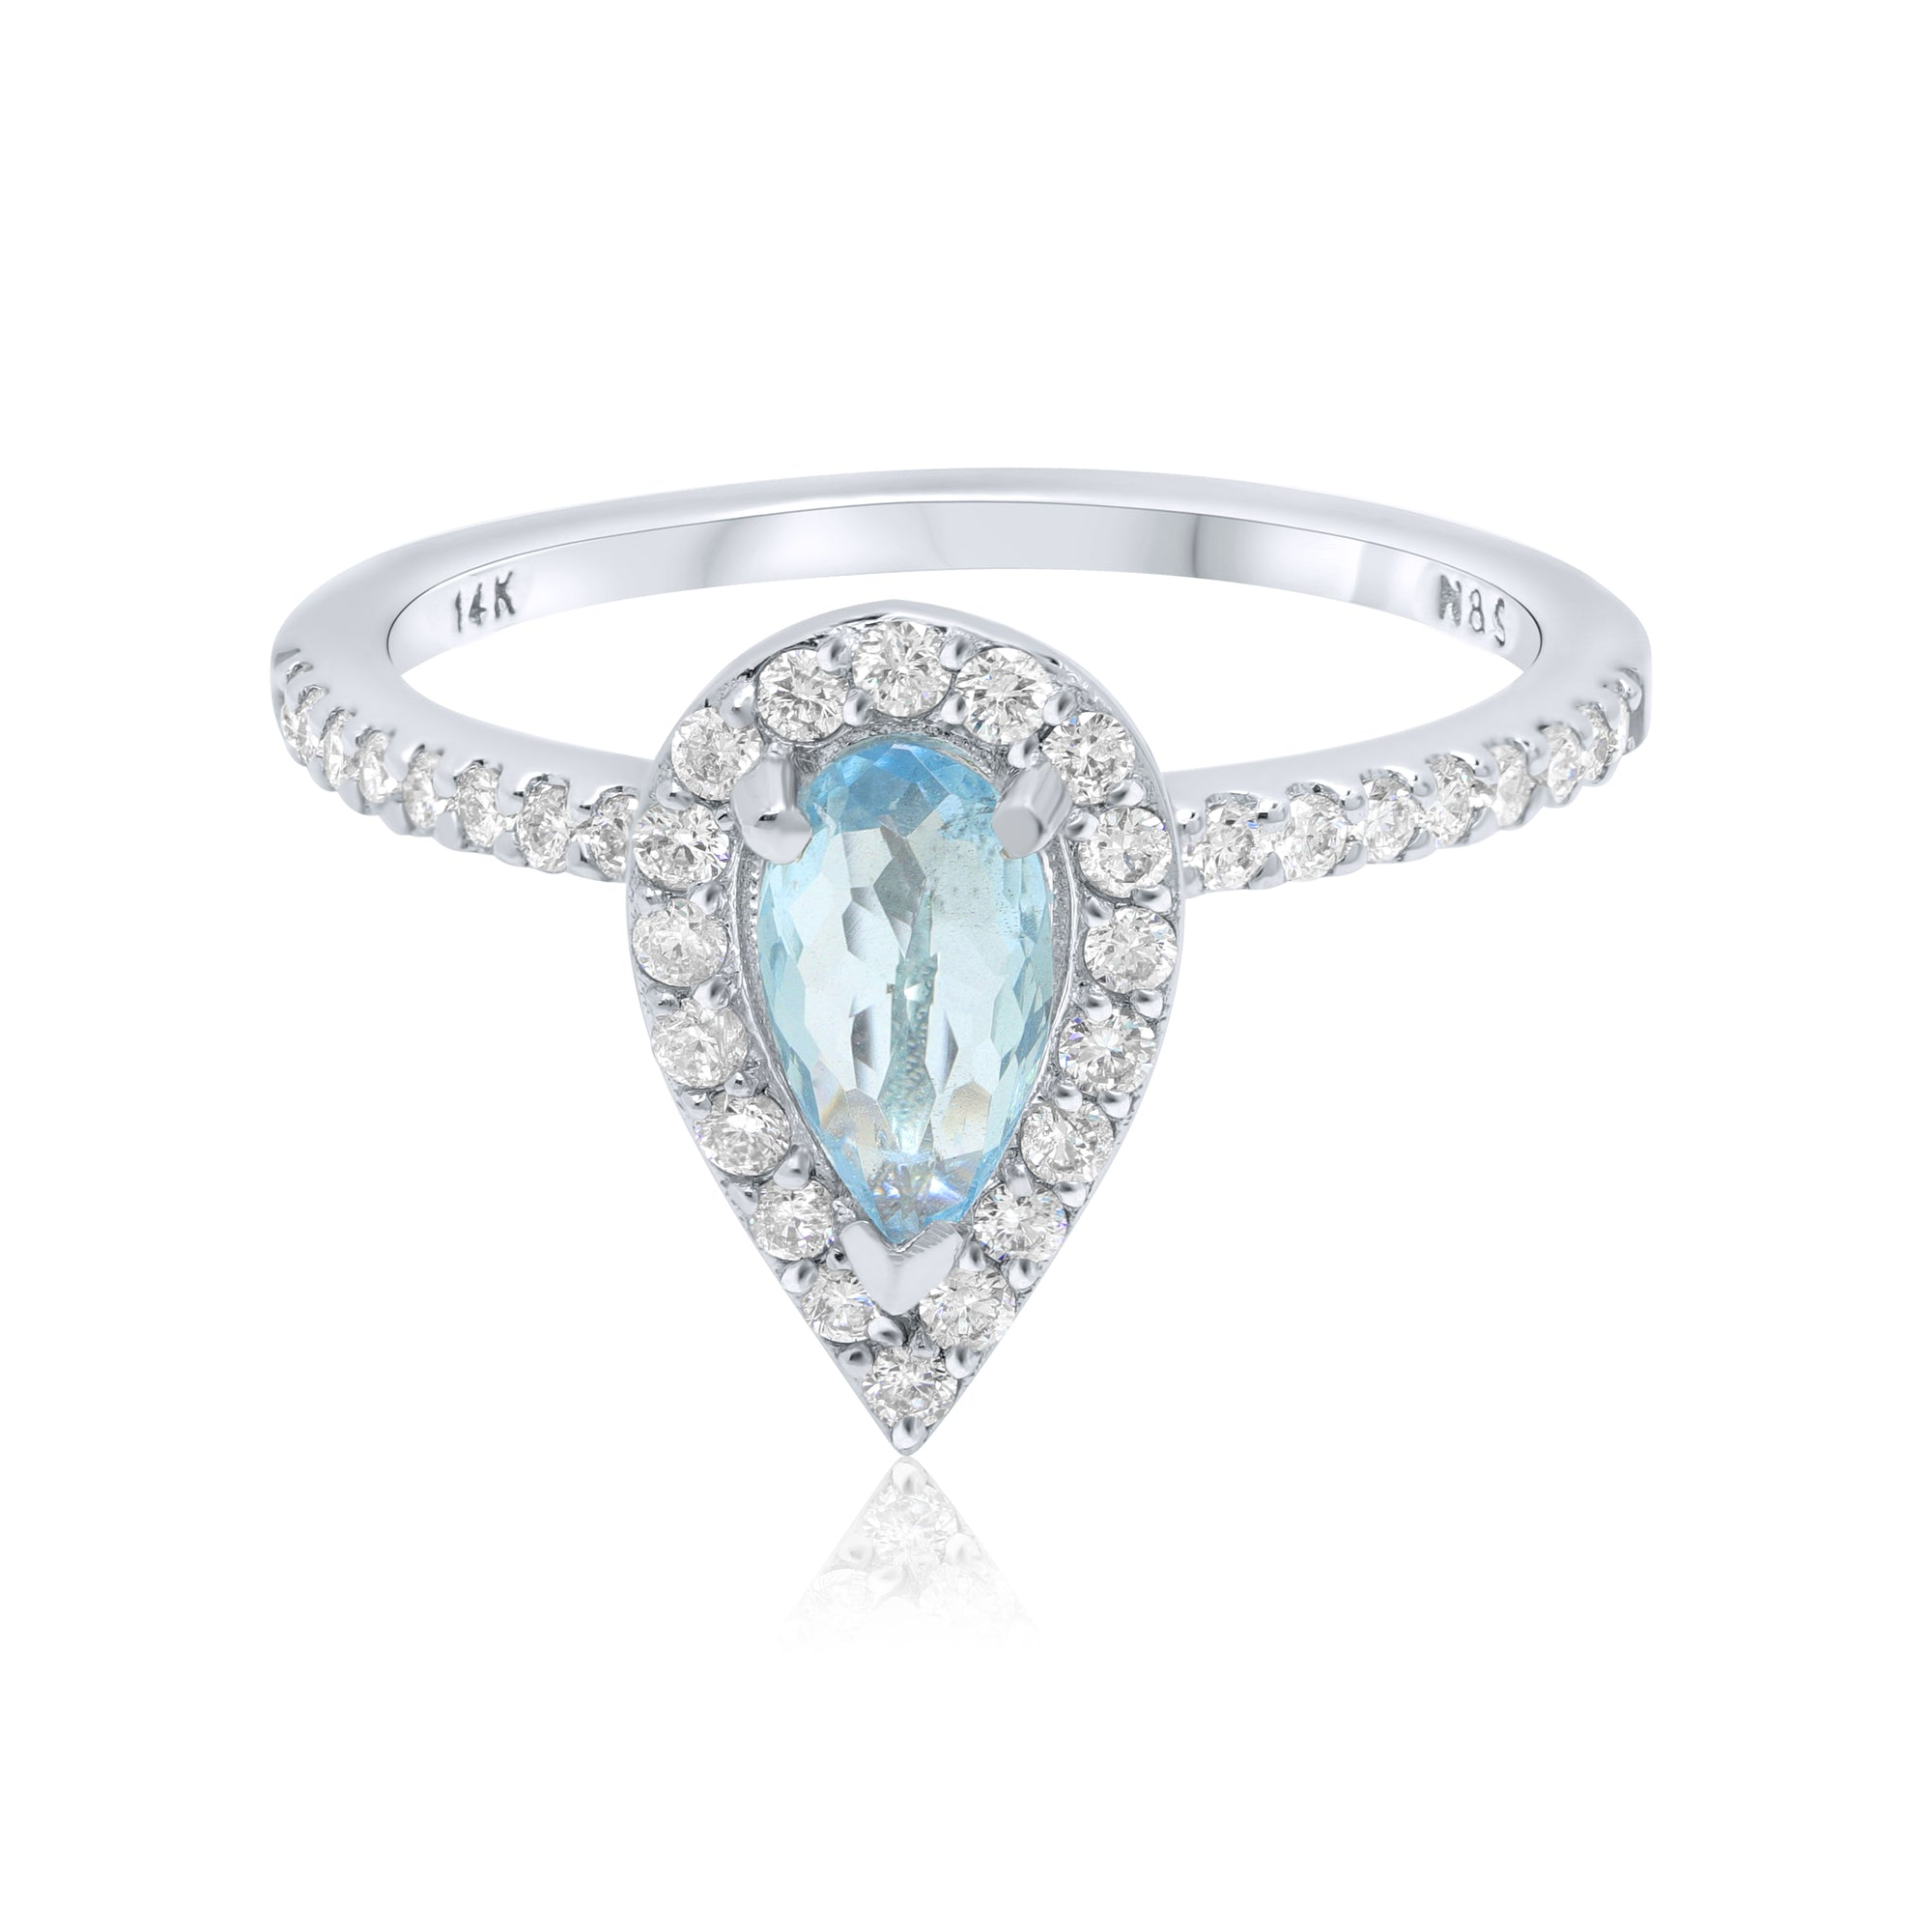 0.5-0.6 CT Pear Cut Aquamarine Diamond Halo 14K Gold Ring BSAQ1